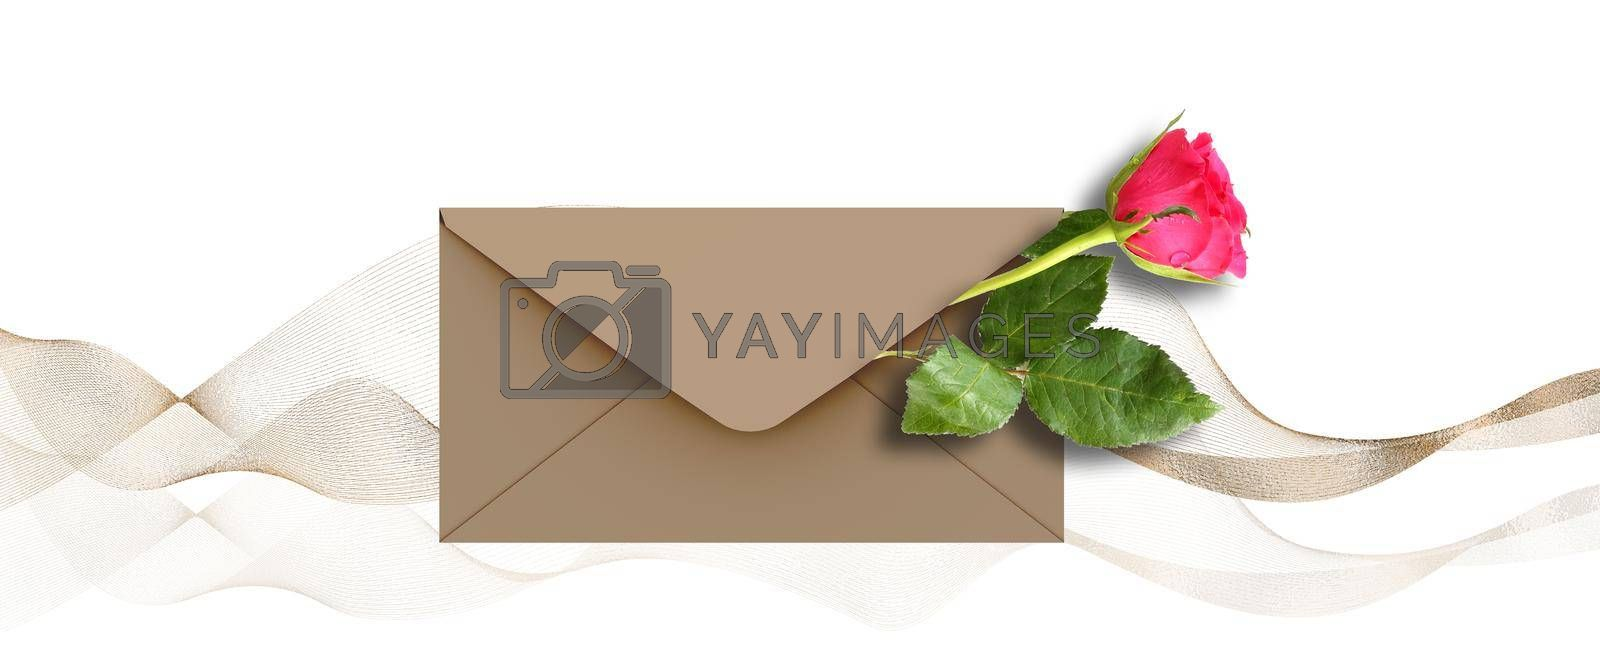 Single Red rose flower in envelope for mock up on white background, abstract golden waves. Flowers for holiday cards, mother's day, 8 March, birthday, wedding, Valentine's Day. Beautiful flower card